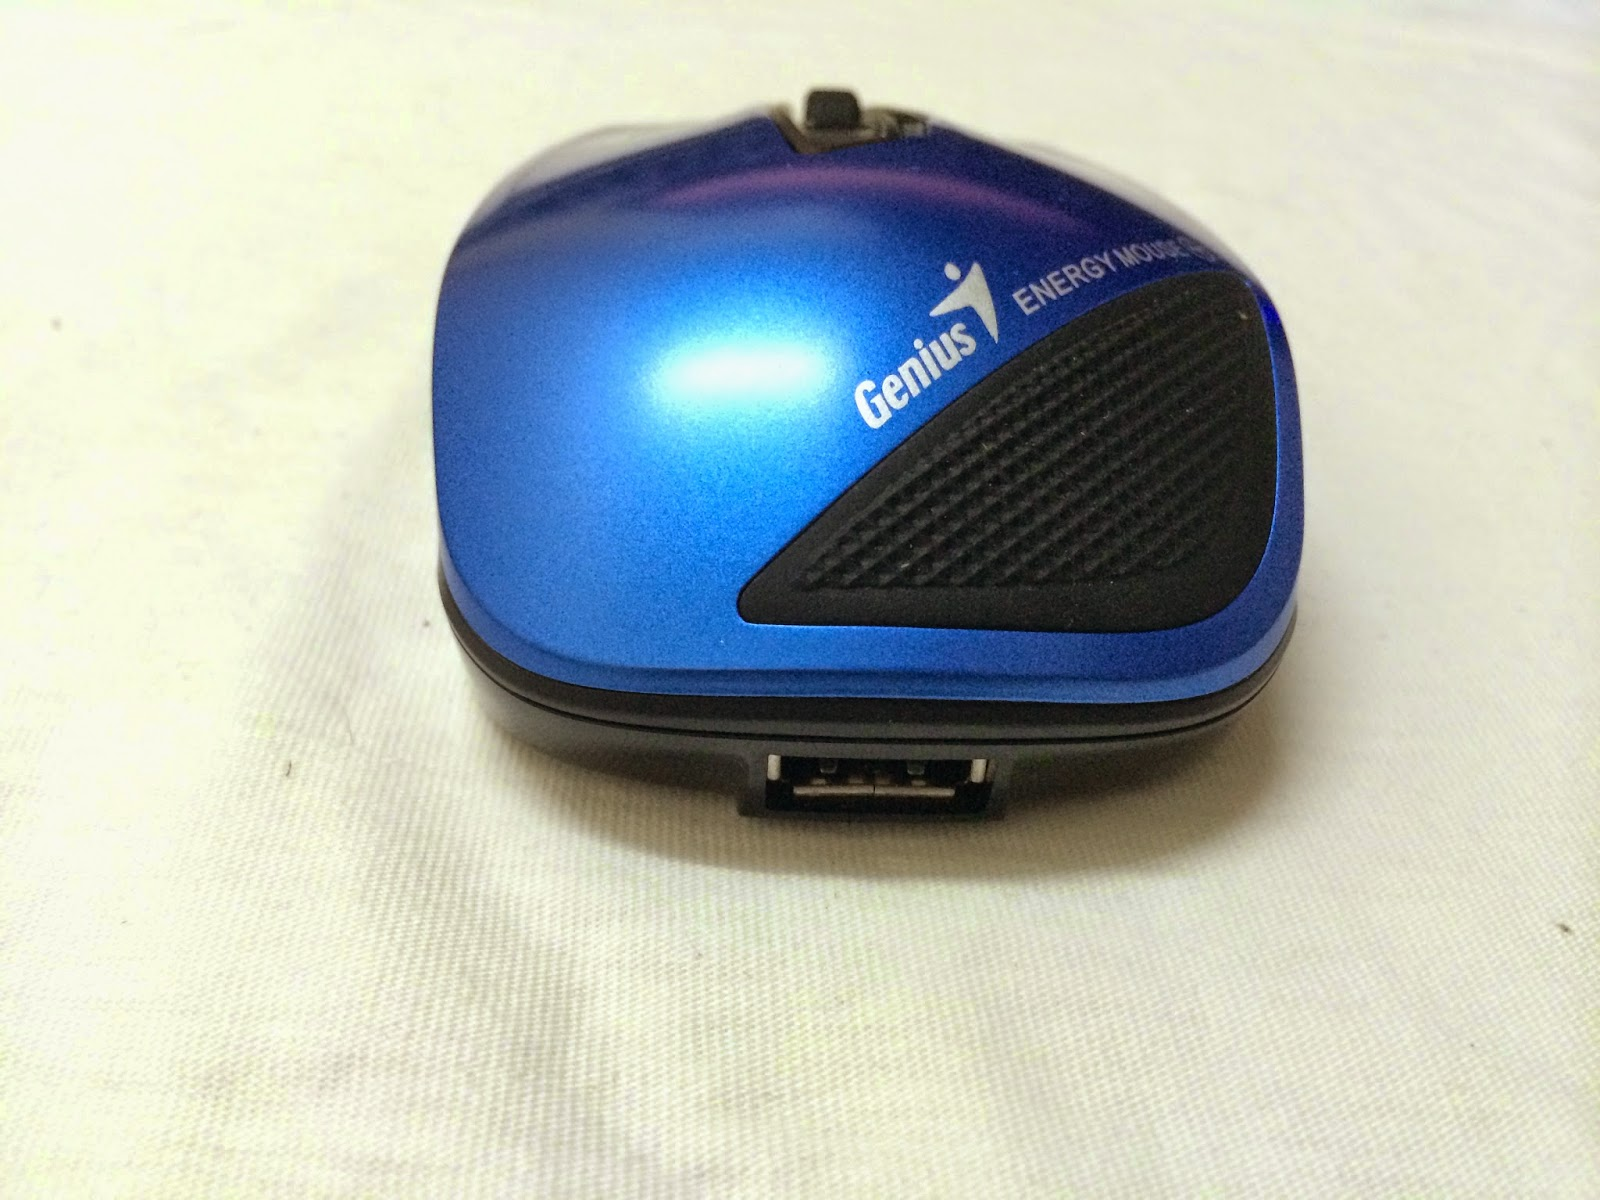 Unboxing & Review: Genius Energy Mouse 29